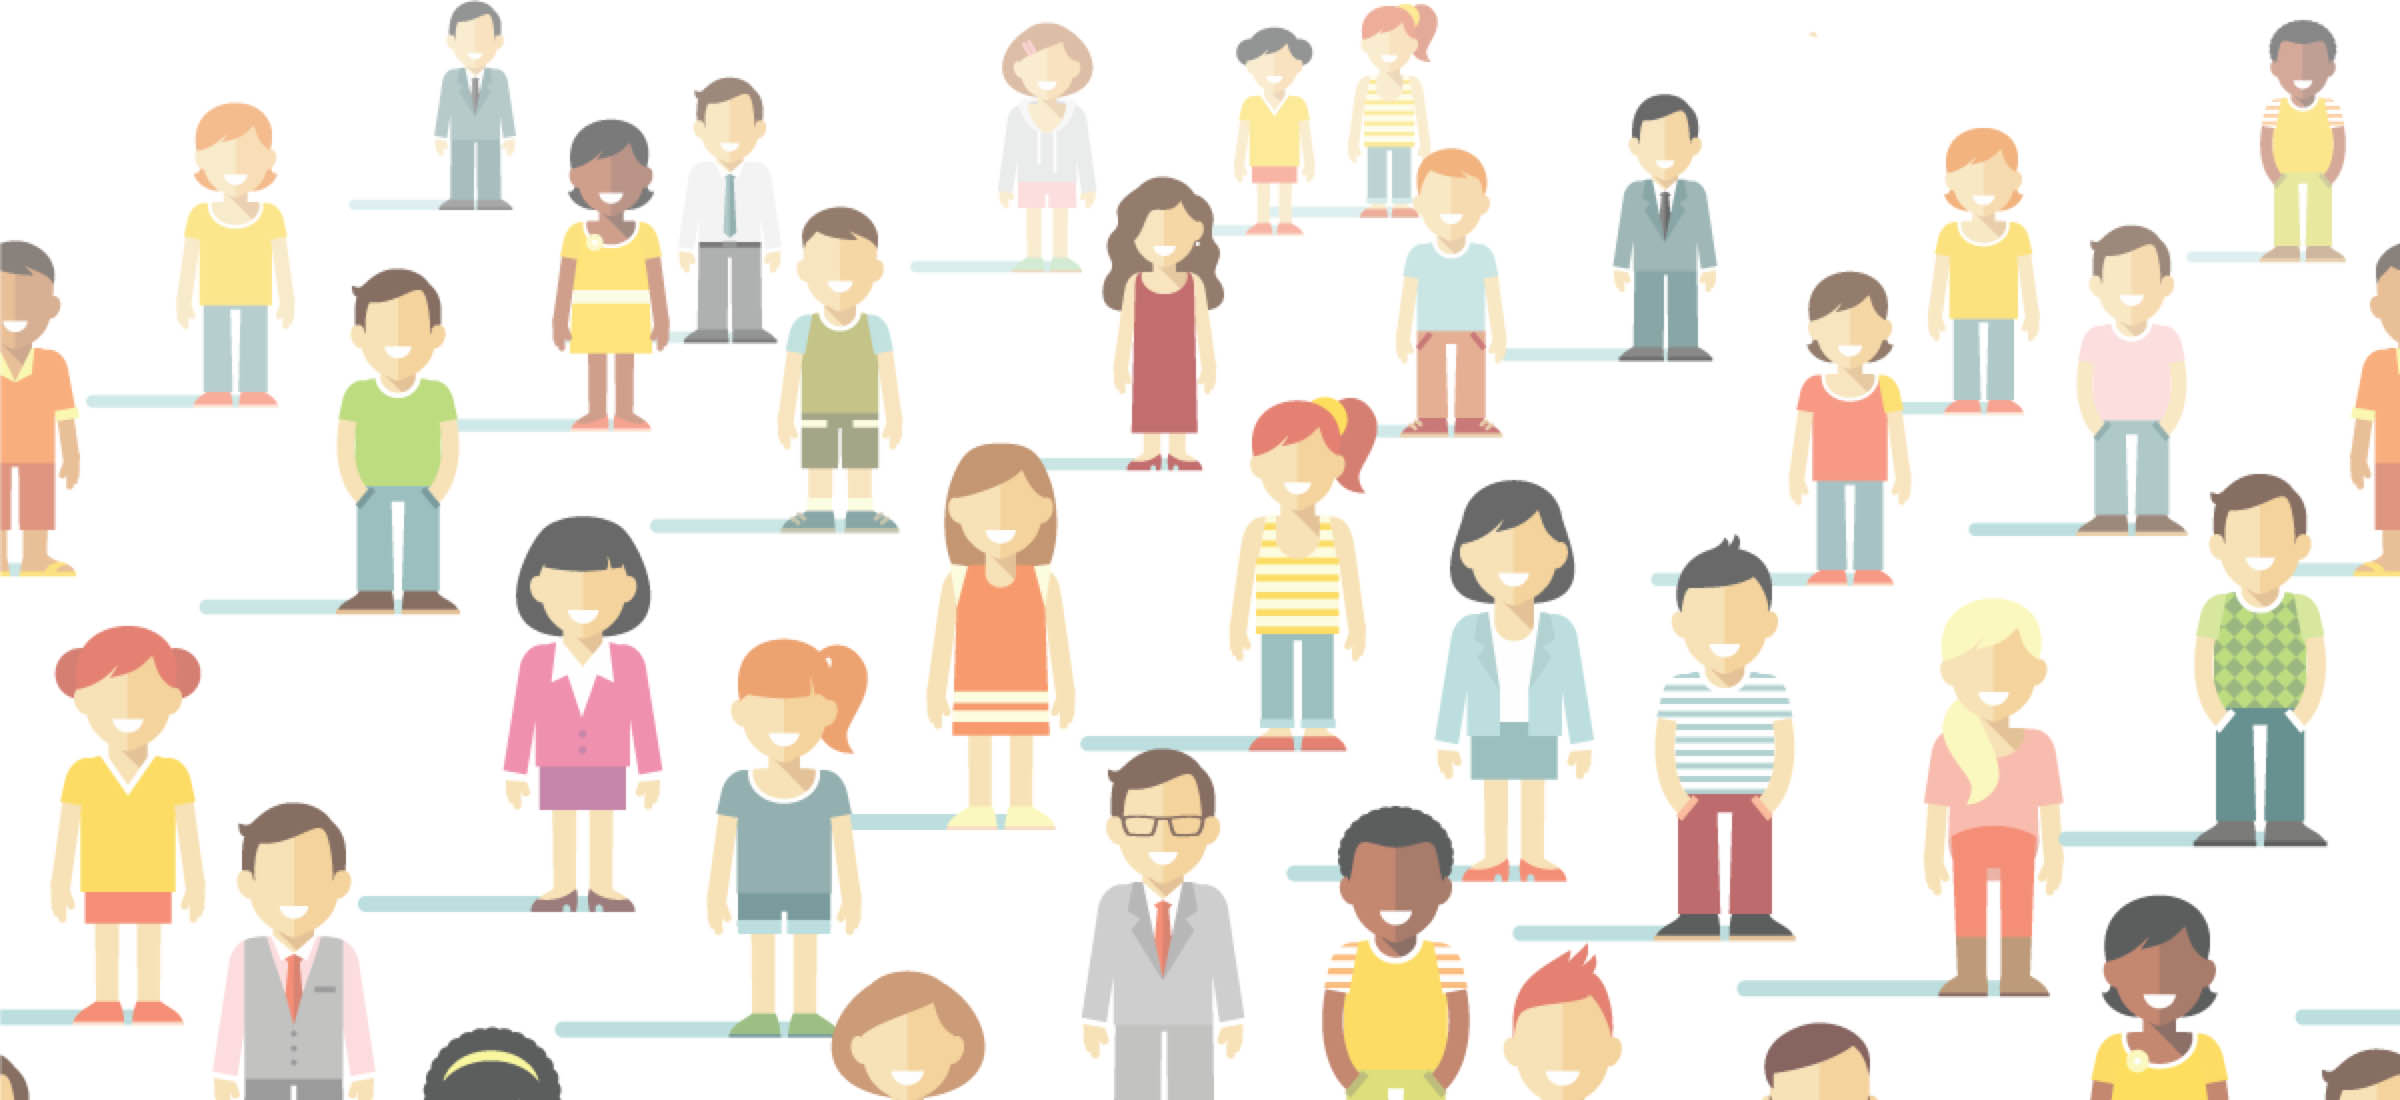 Collage of illustrated people representing diversity